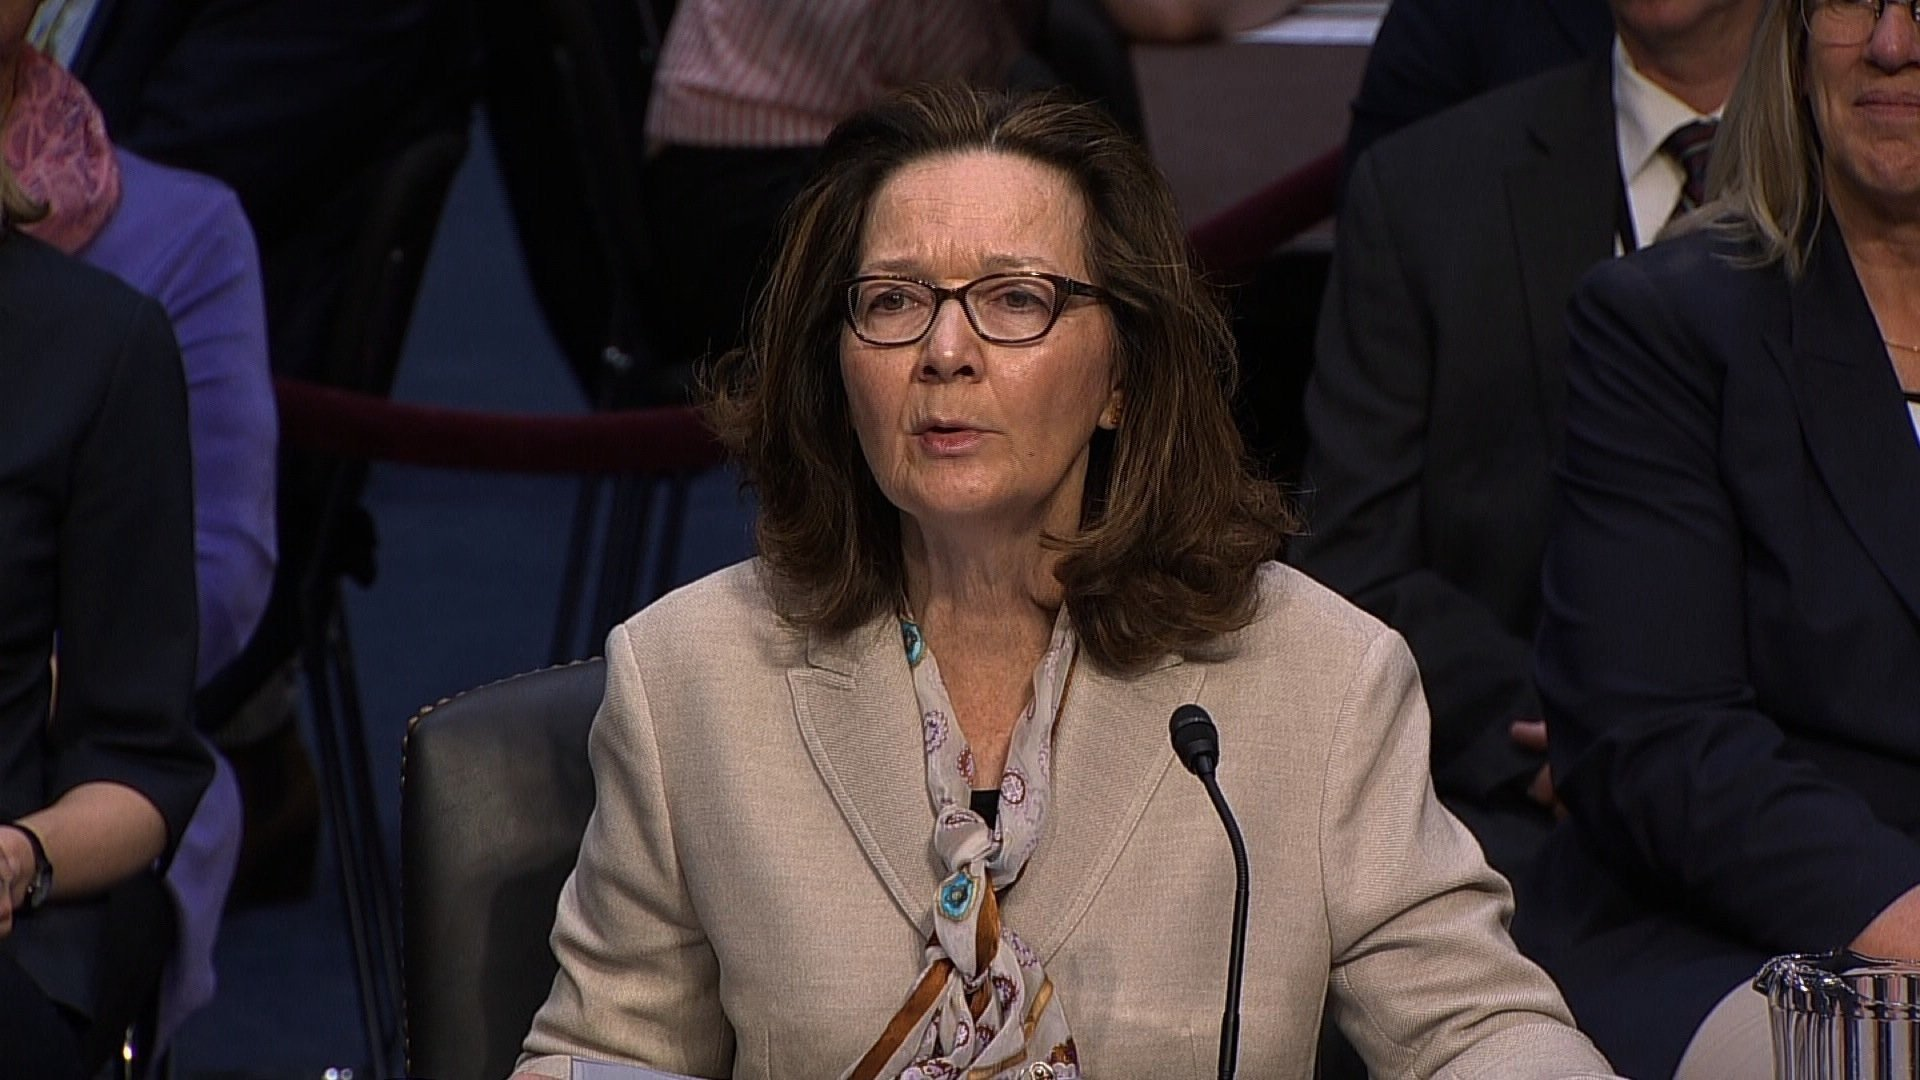 McCain urges senators to reject Gina Haspel's Central Intelligence Agency nomination